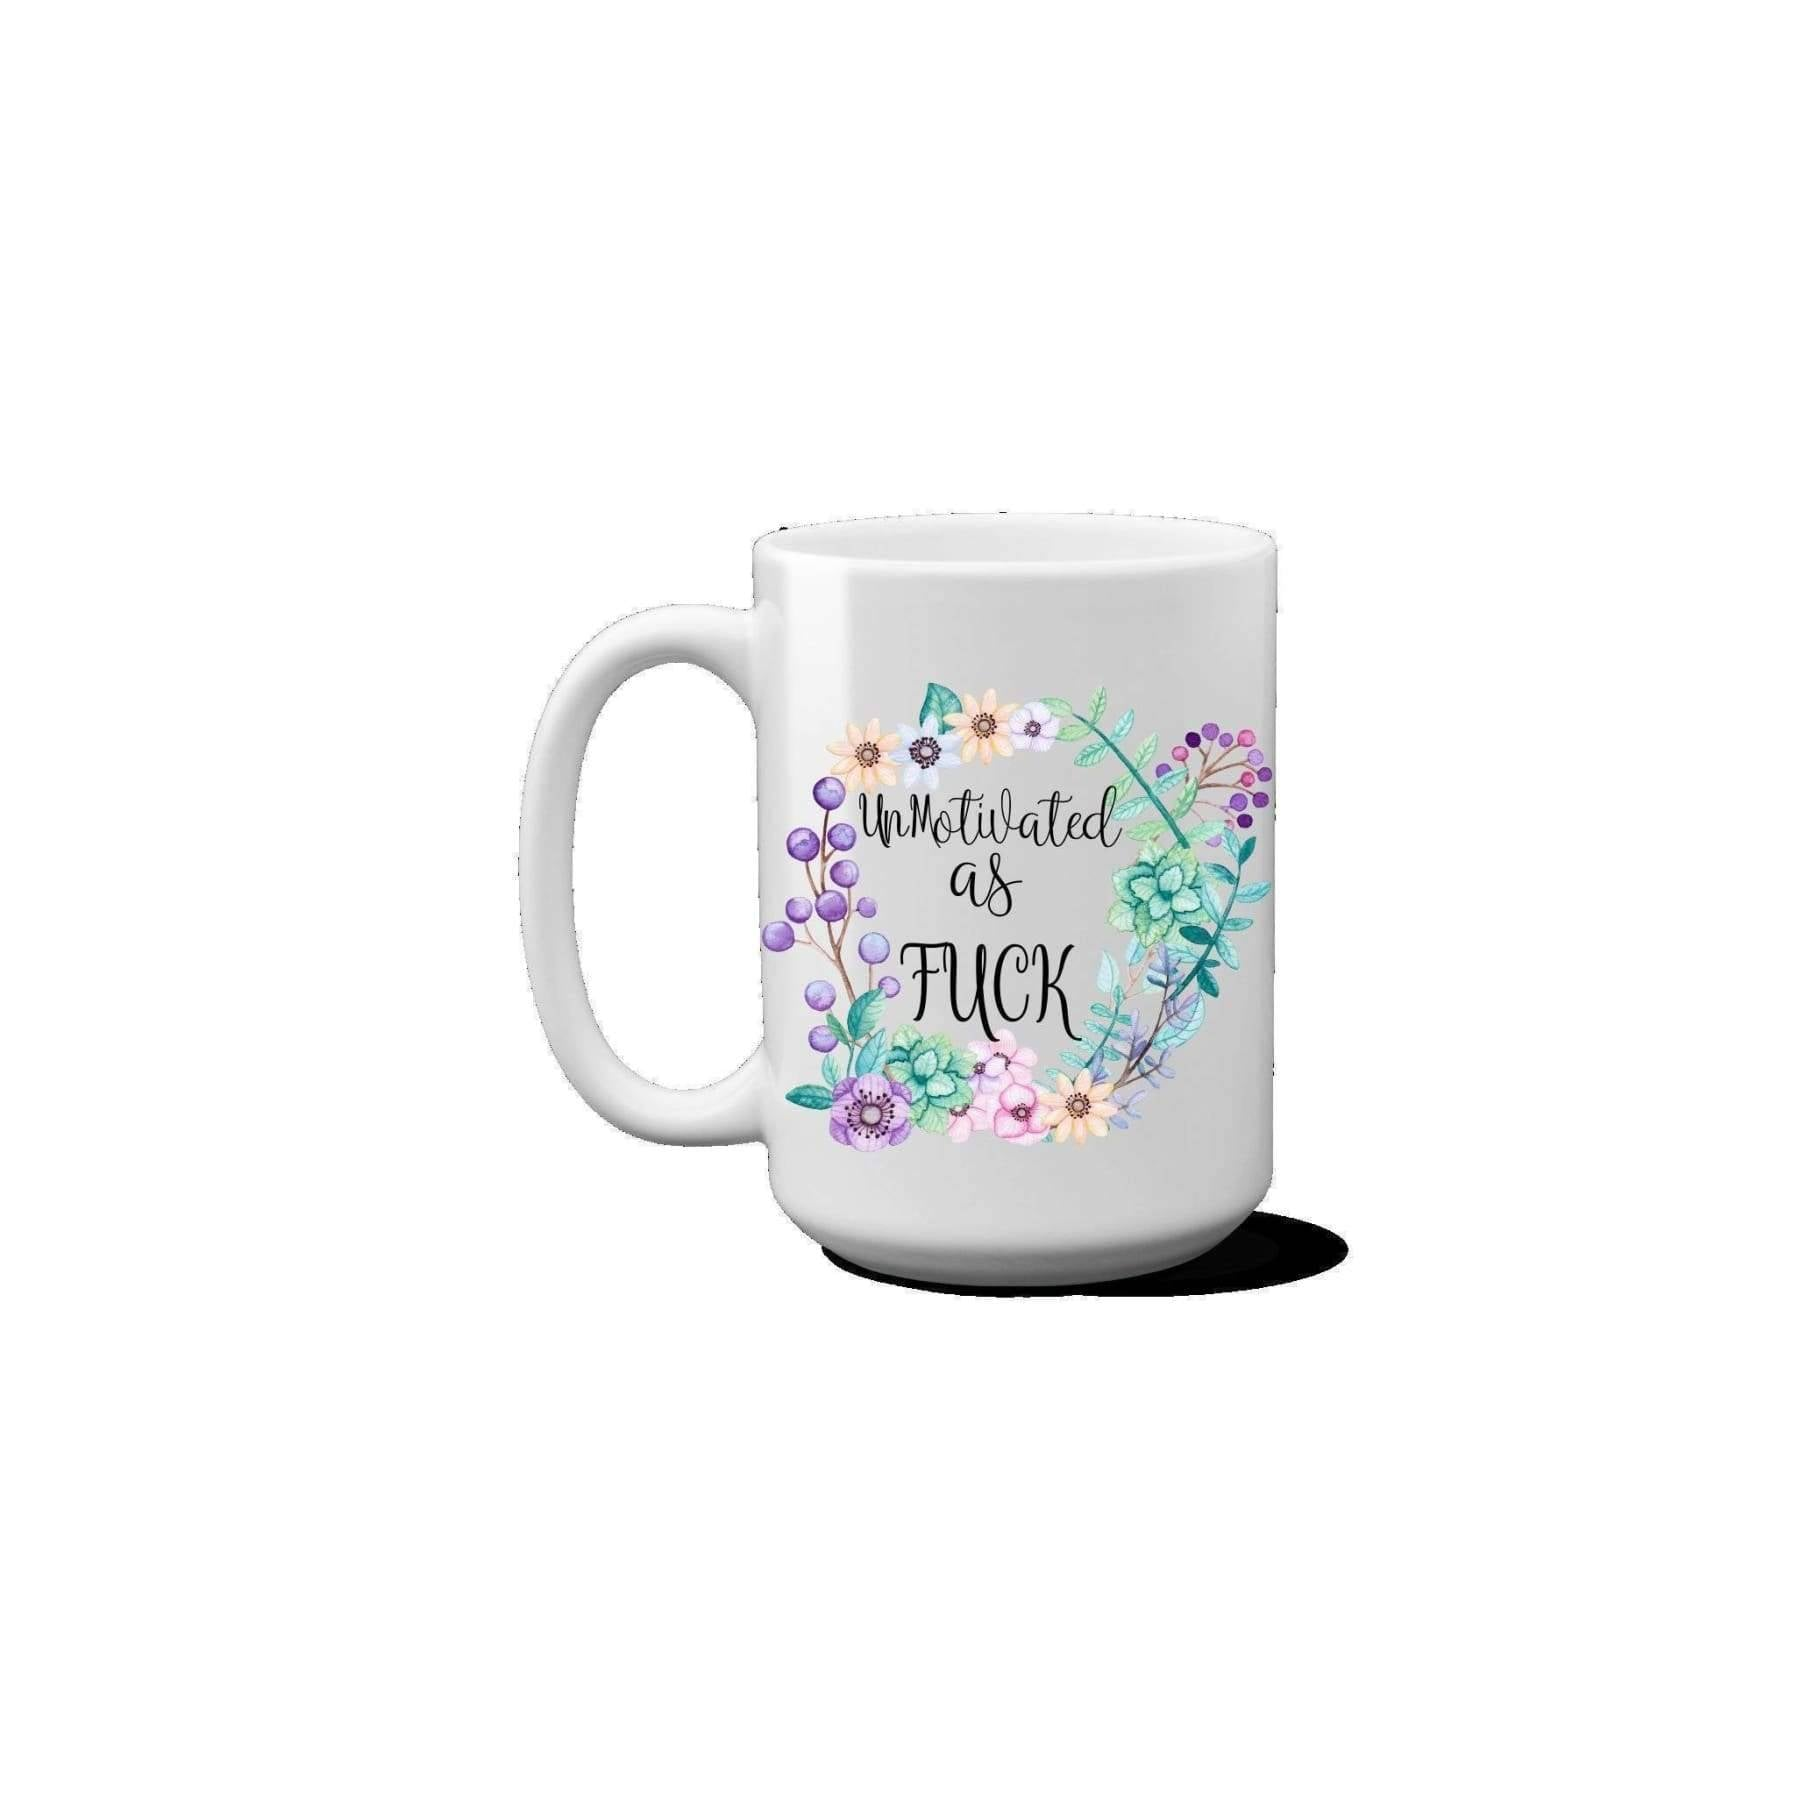 Rude Mugs - Funny Coffee Mug, Unmotivated as Fuck..